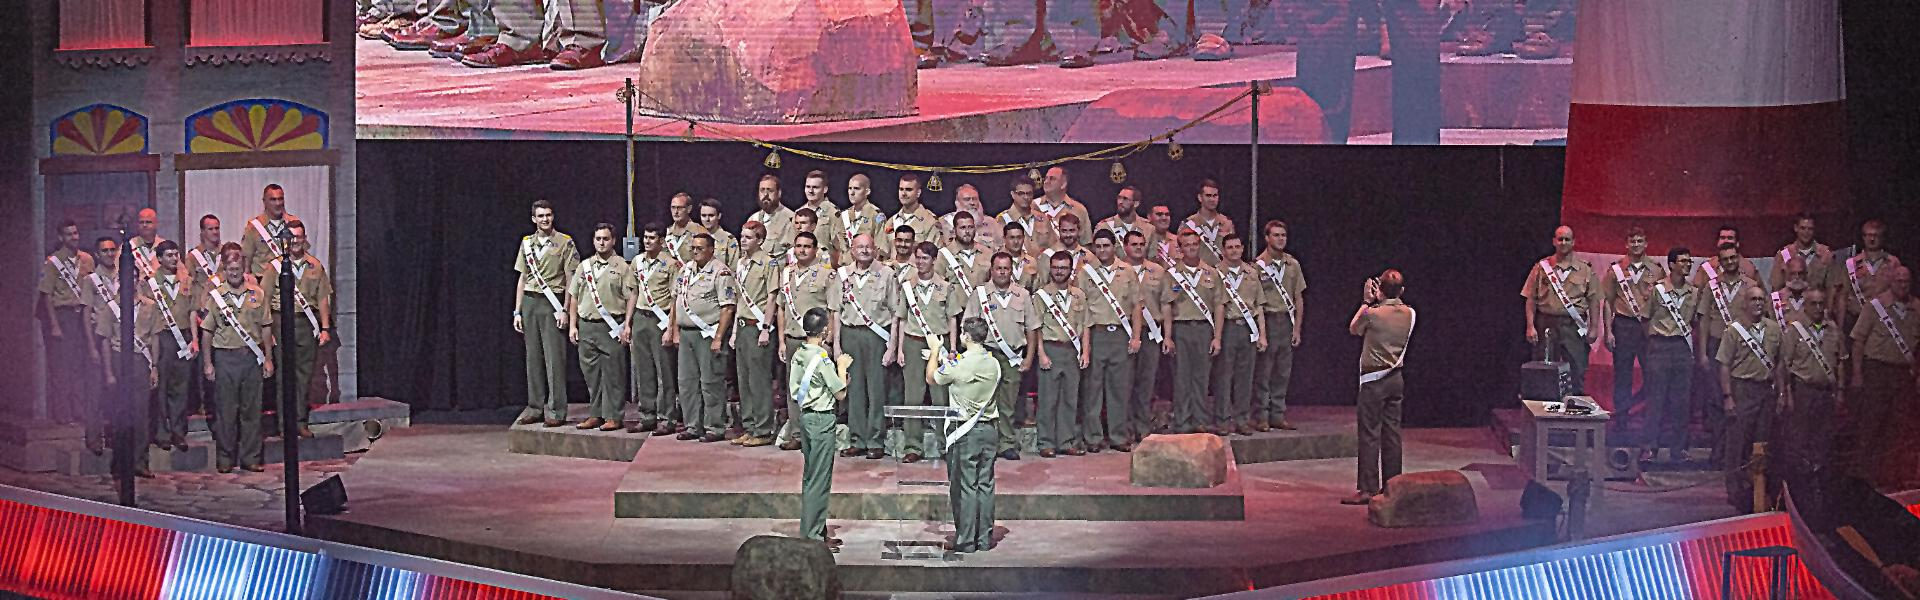 2018 Distinguished Service Award Recipients at NOAC 2018